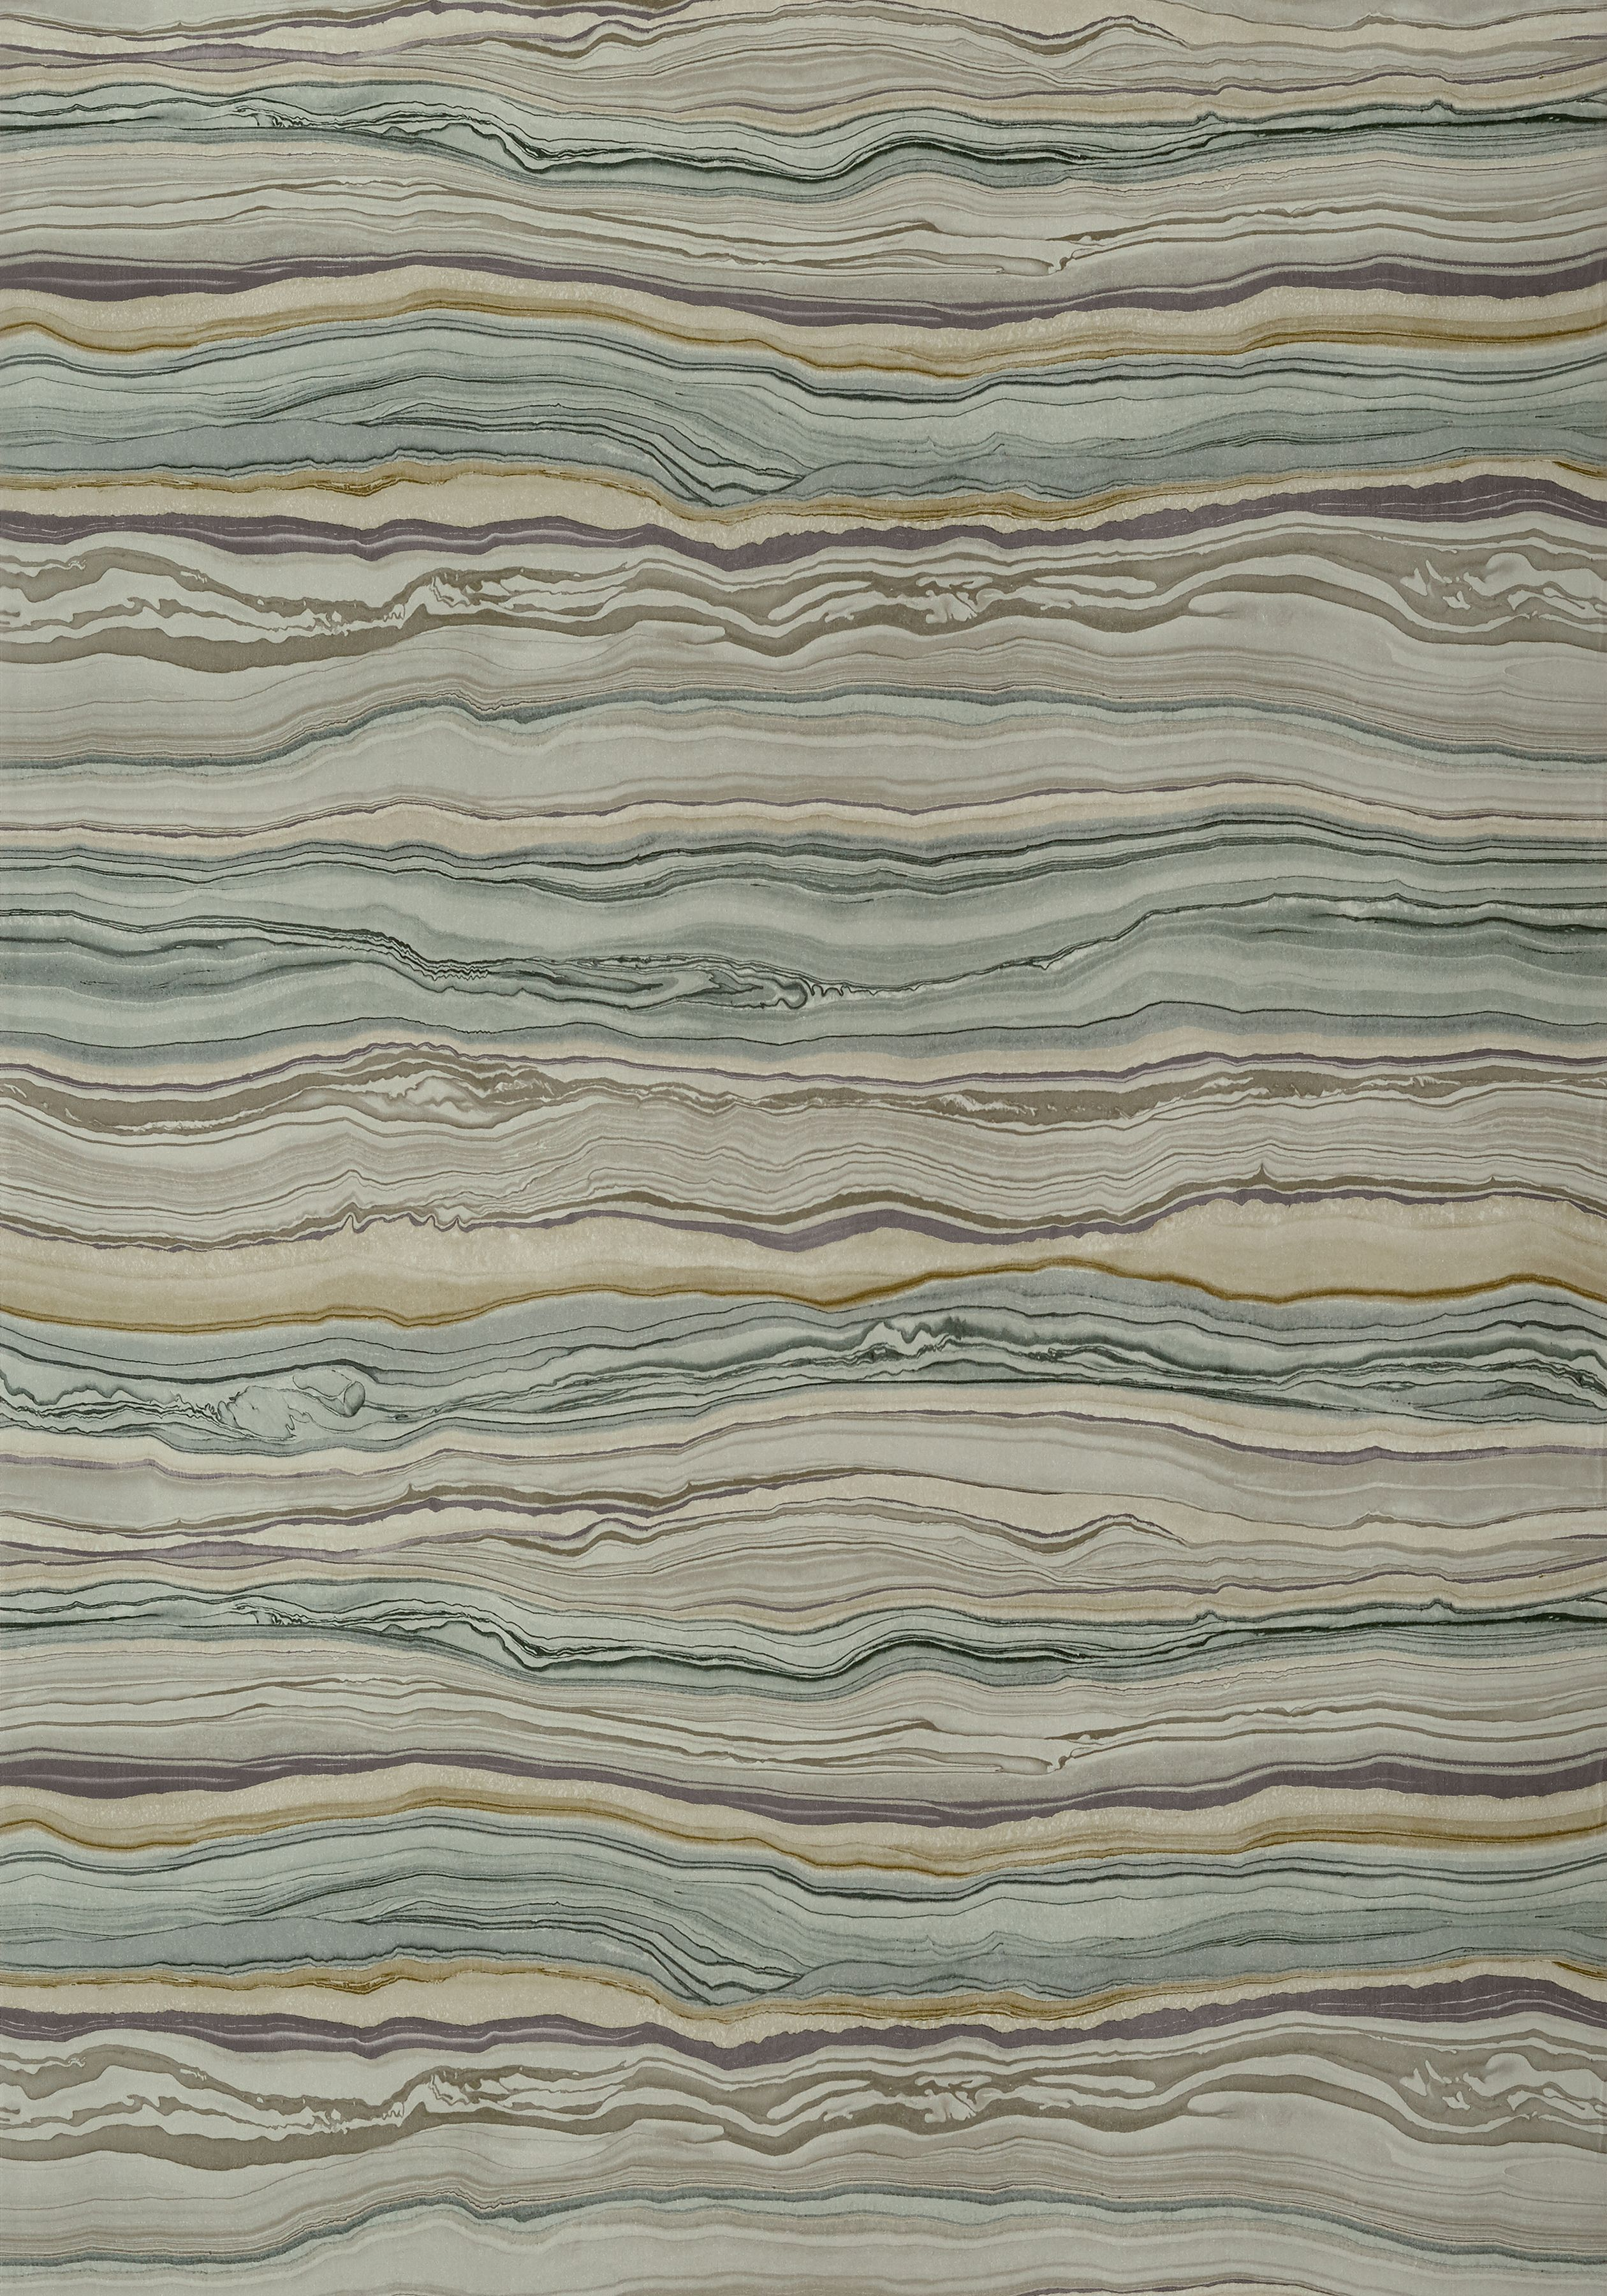 TREVISO MARBLE, Multi, T75174, Collection Faux Resource from Thibaut ...